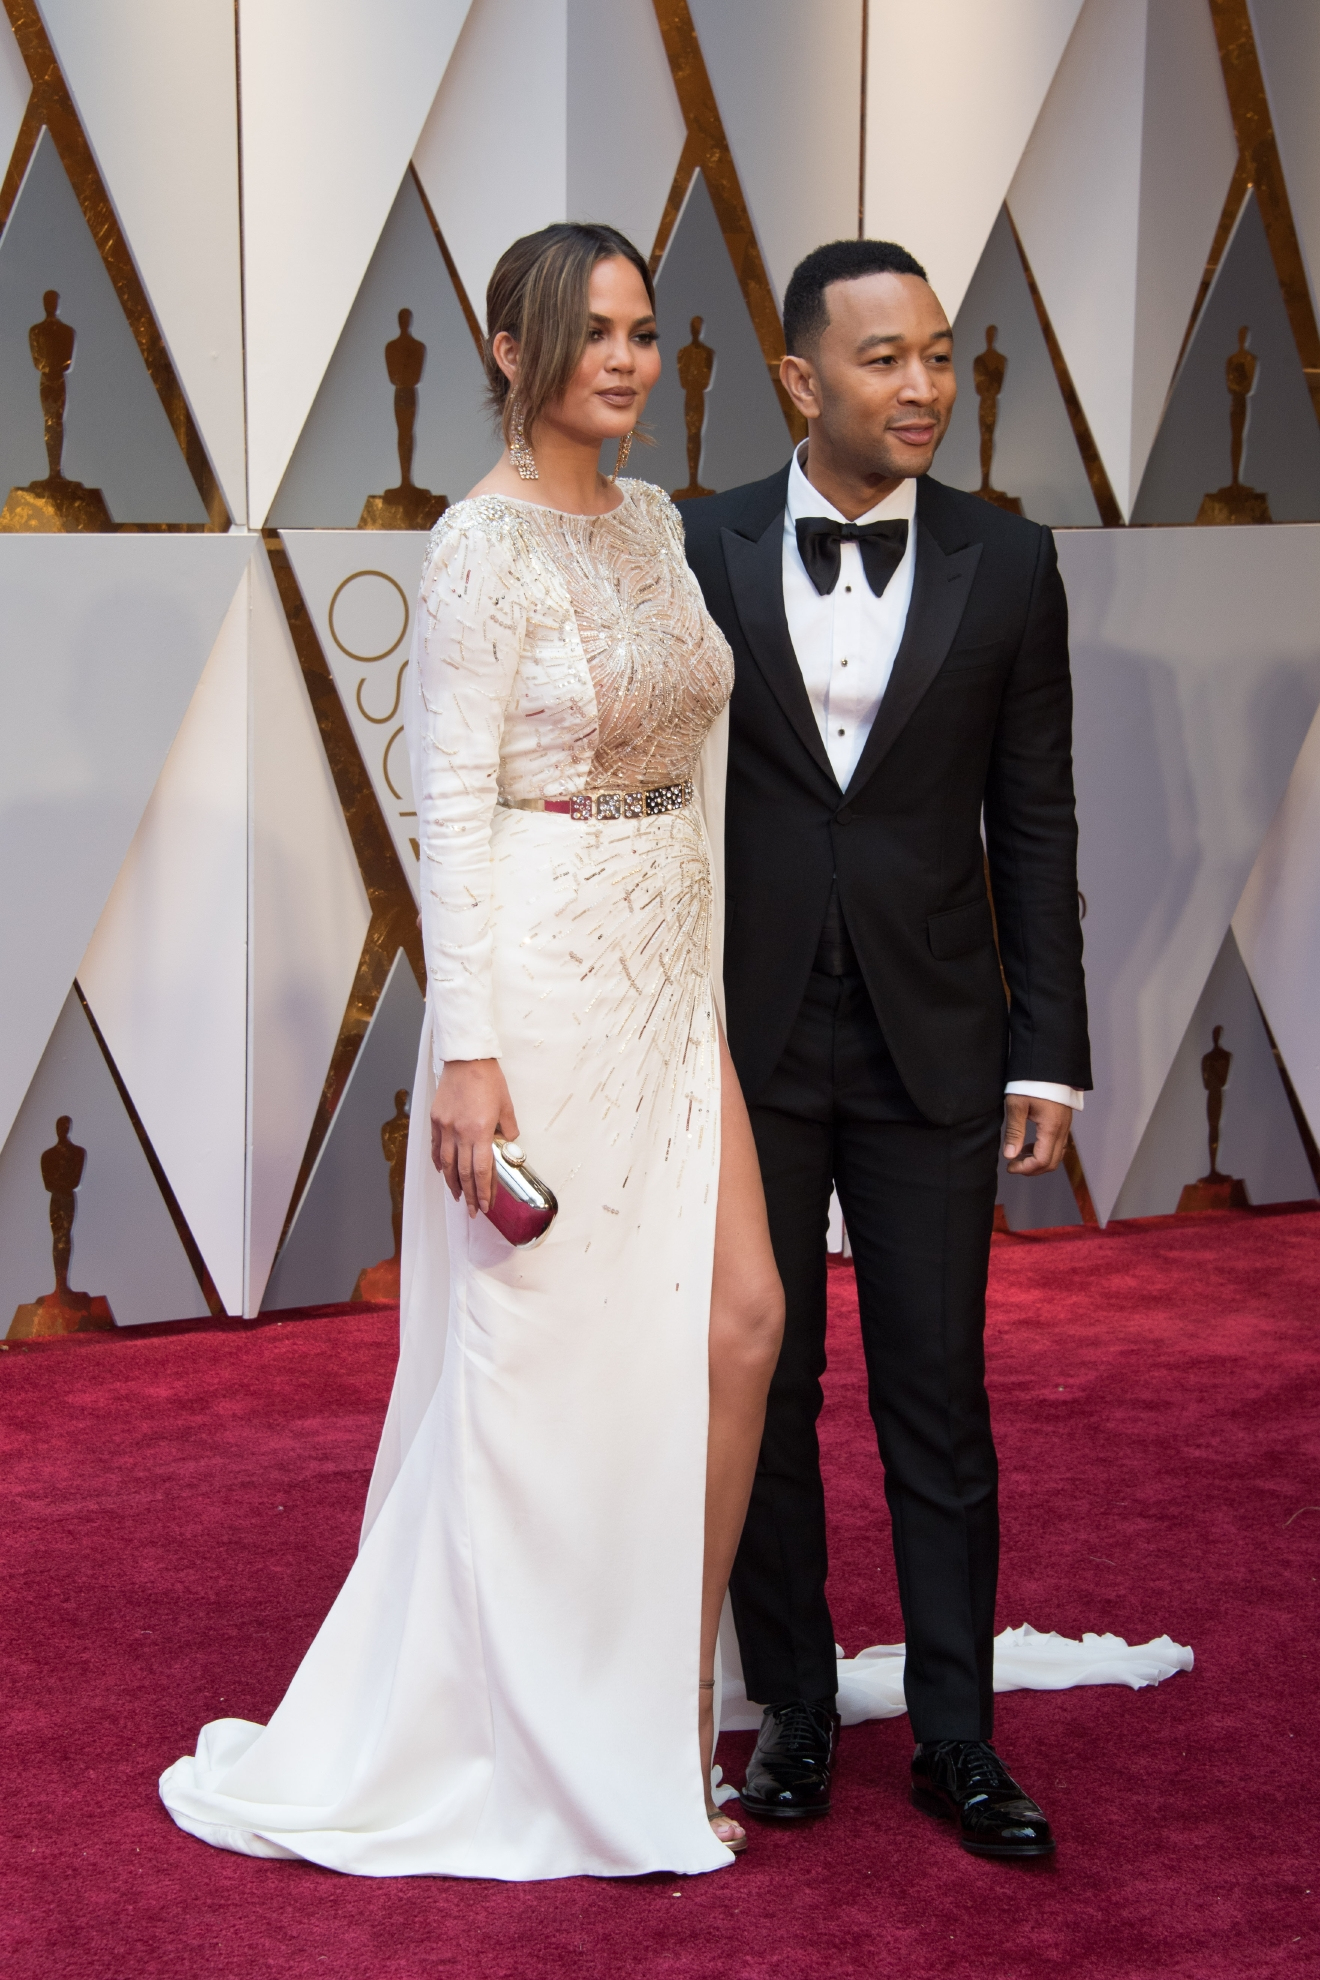 Chrissy Teigen and John Legend arrive at The 89th Oscars® at the Dolby® Theatre in Hollywood, CA on Sunday, February 26, 2017. (©A.M.P.A.S.)